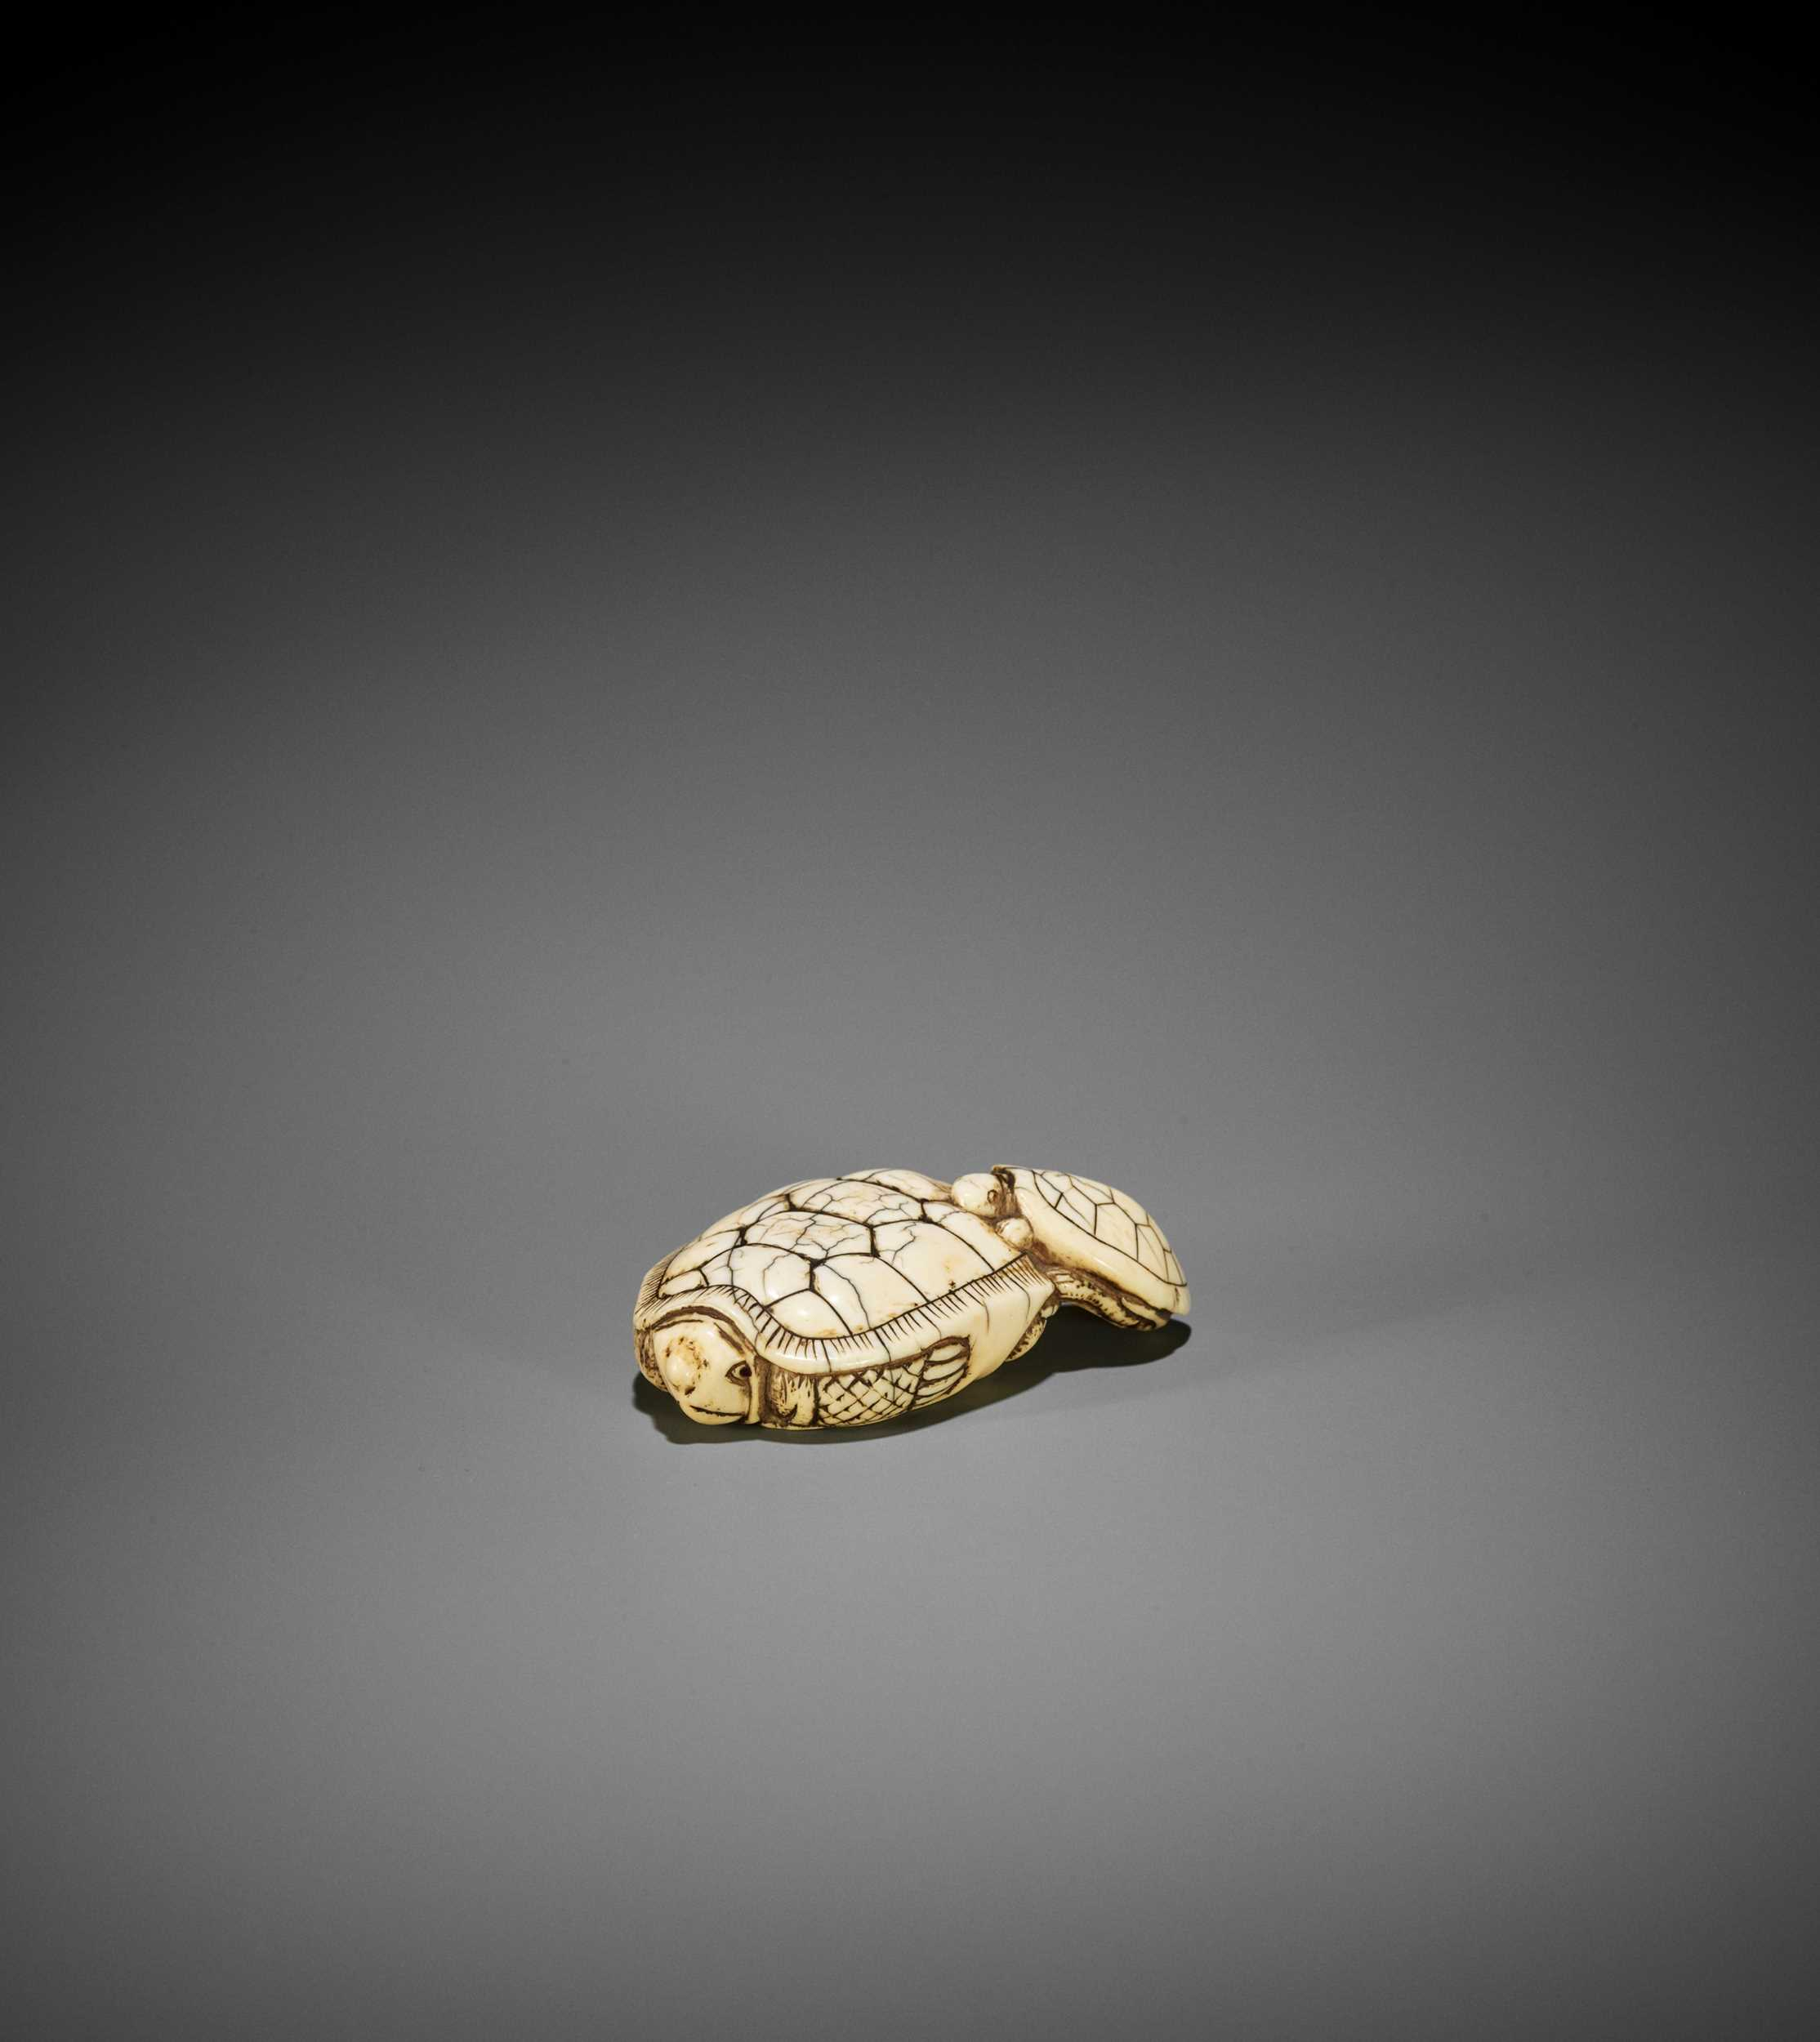 Lot 36 - AN OLD IVORY NETSUKE OF A TURTLE WITH YOUNG